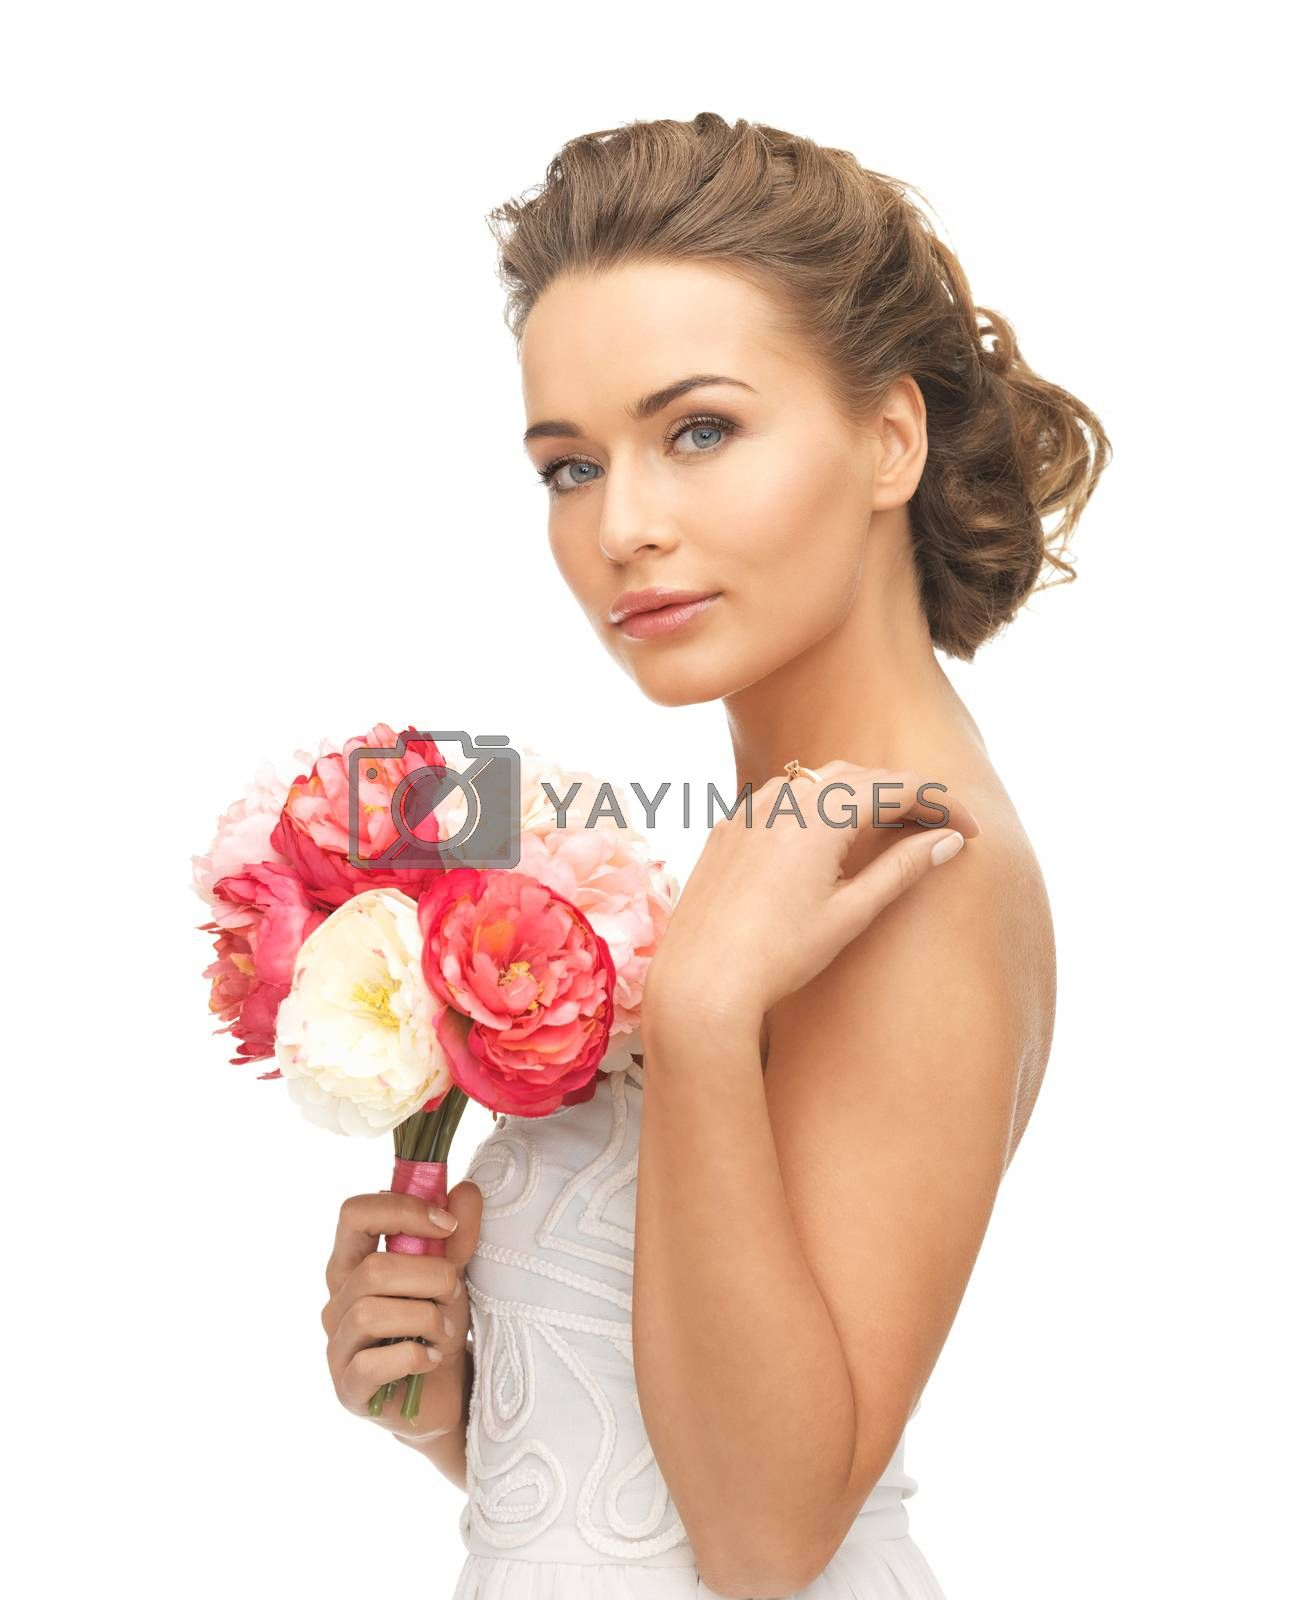 woman with bouquet of flowers by dolgachov